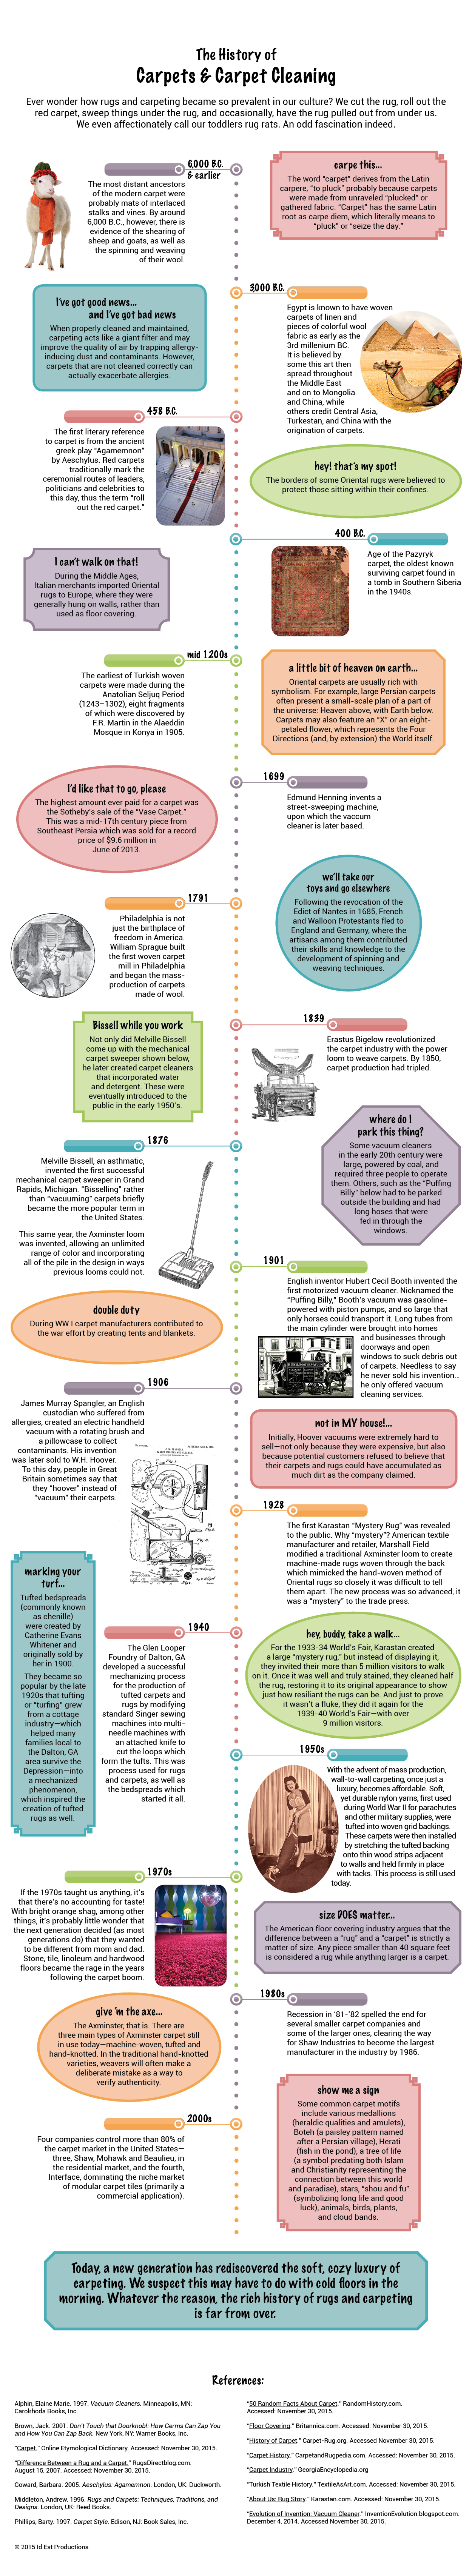 Infographic - History of Carpet and Rugs